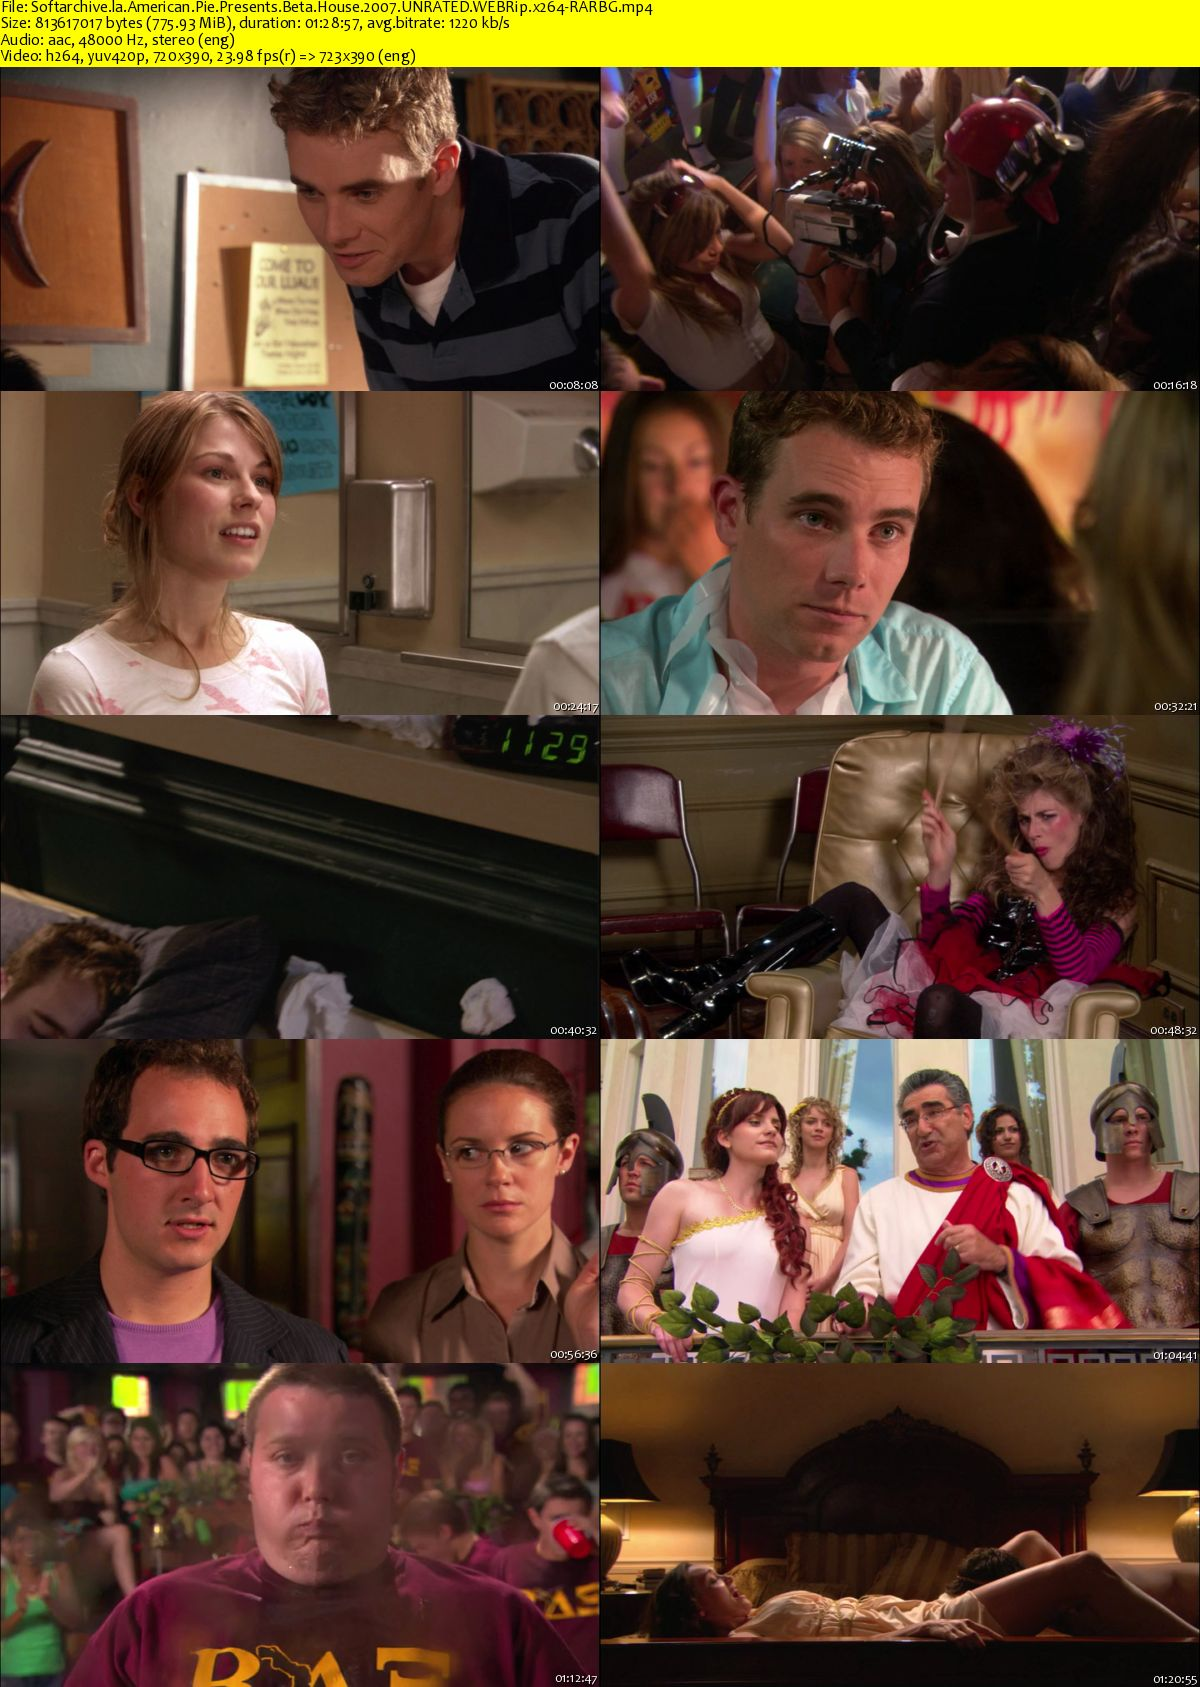 American Pie Presents Beta House Full Movie download american pie presents beta house 2007 unrated